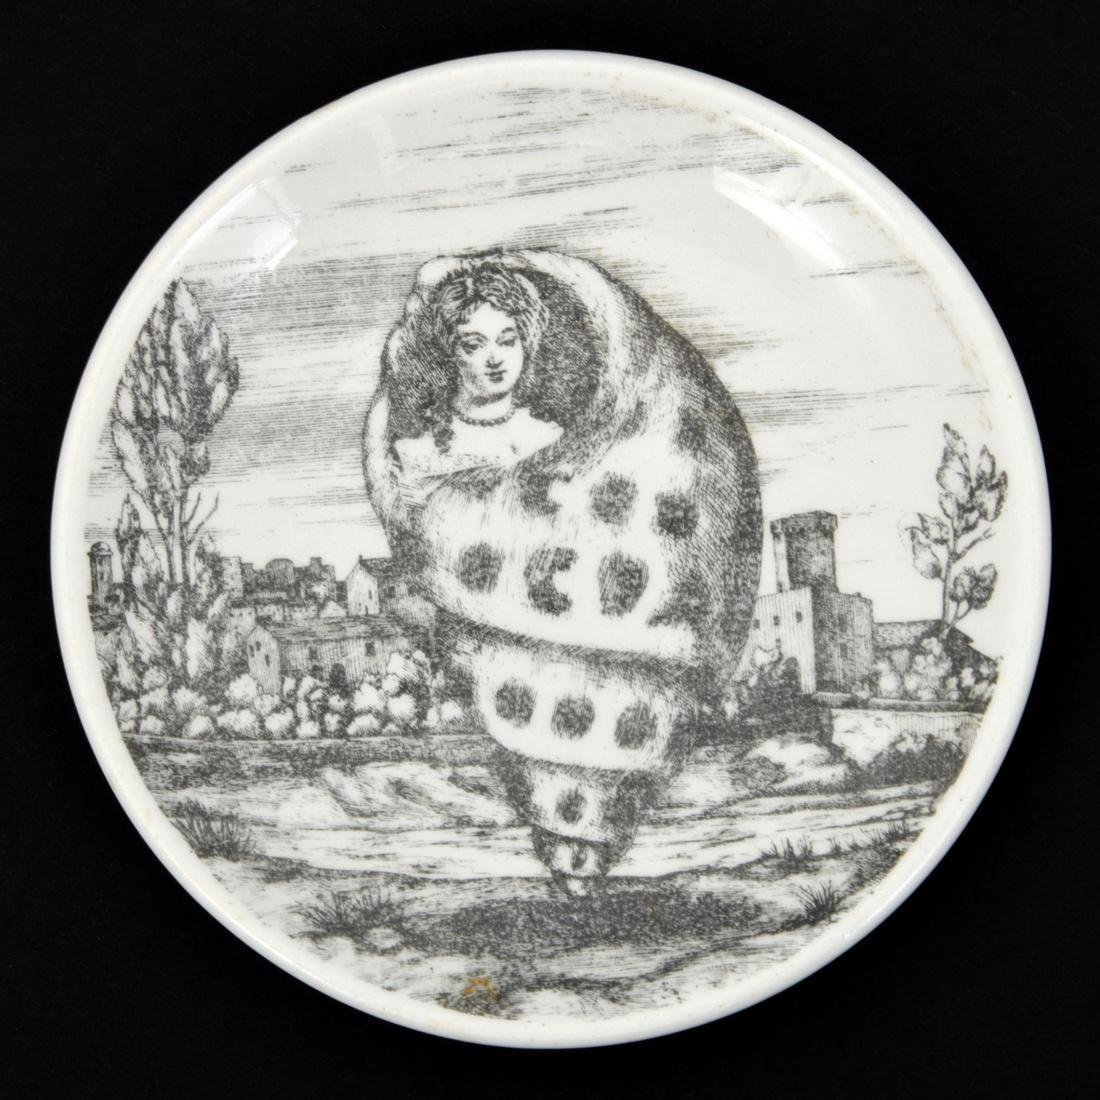 Piero Fornasetti LE OCEANIDI Coasters, Set of 6 - 9